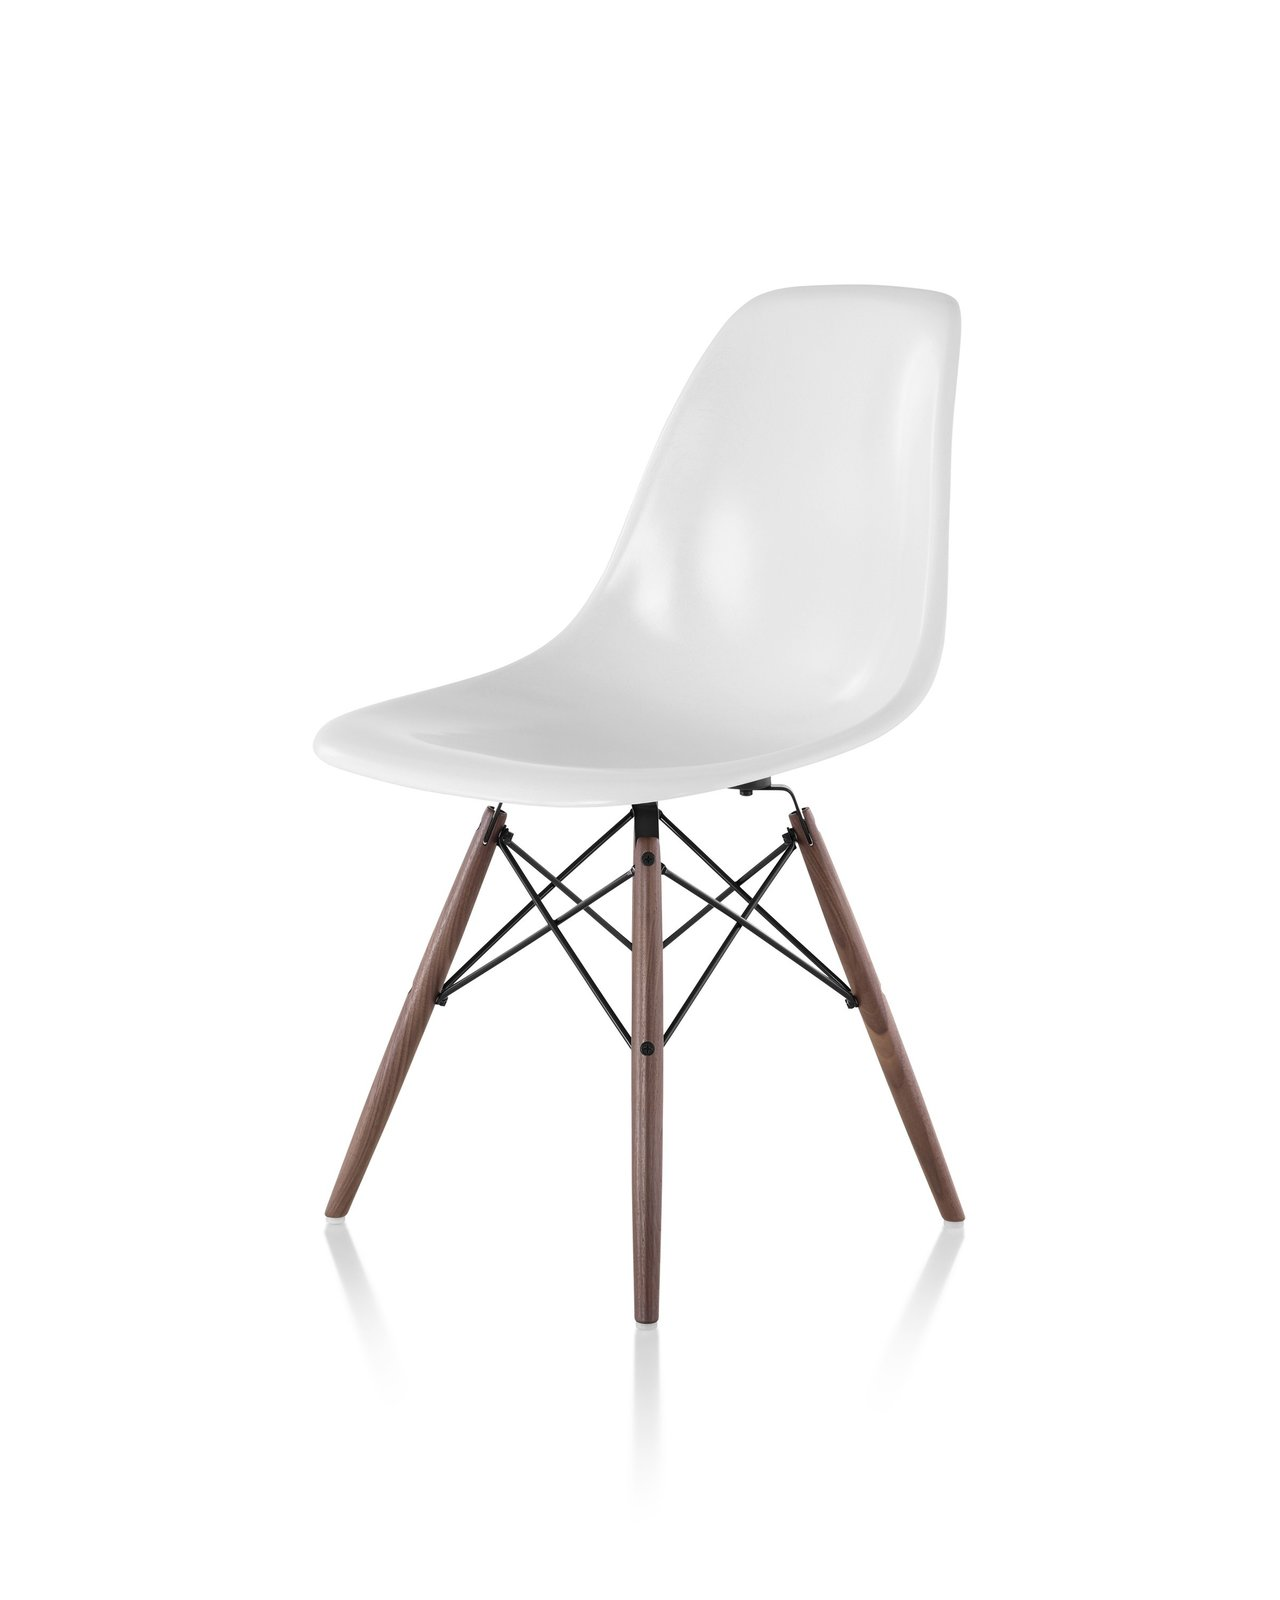 Eames Molded Plastic Side Chair With Dowel Base By YLiving   Dwell